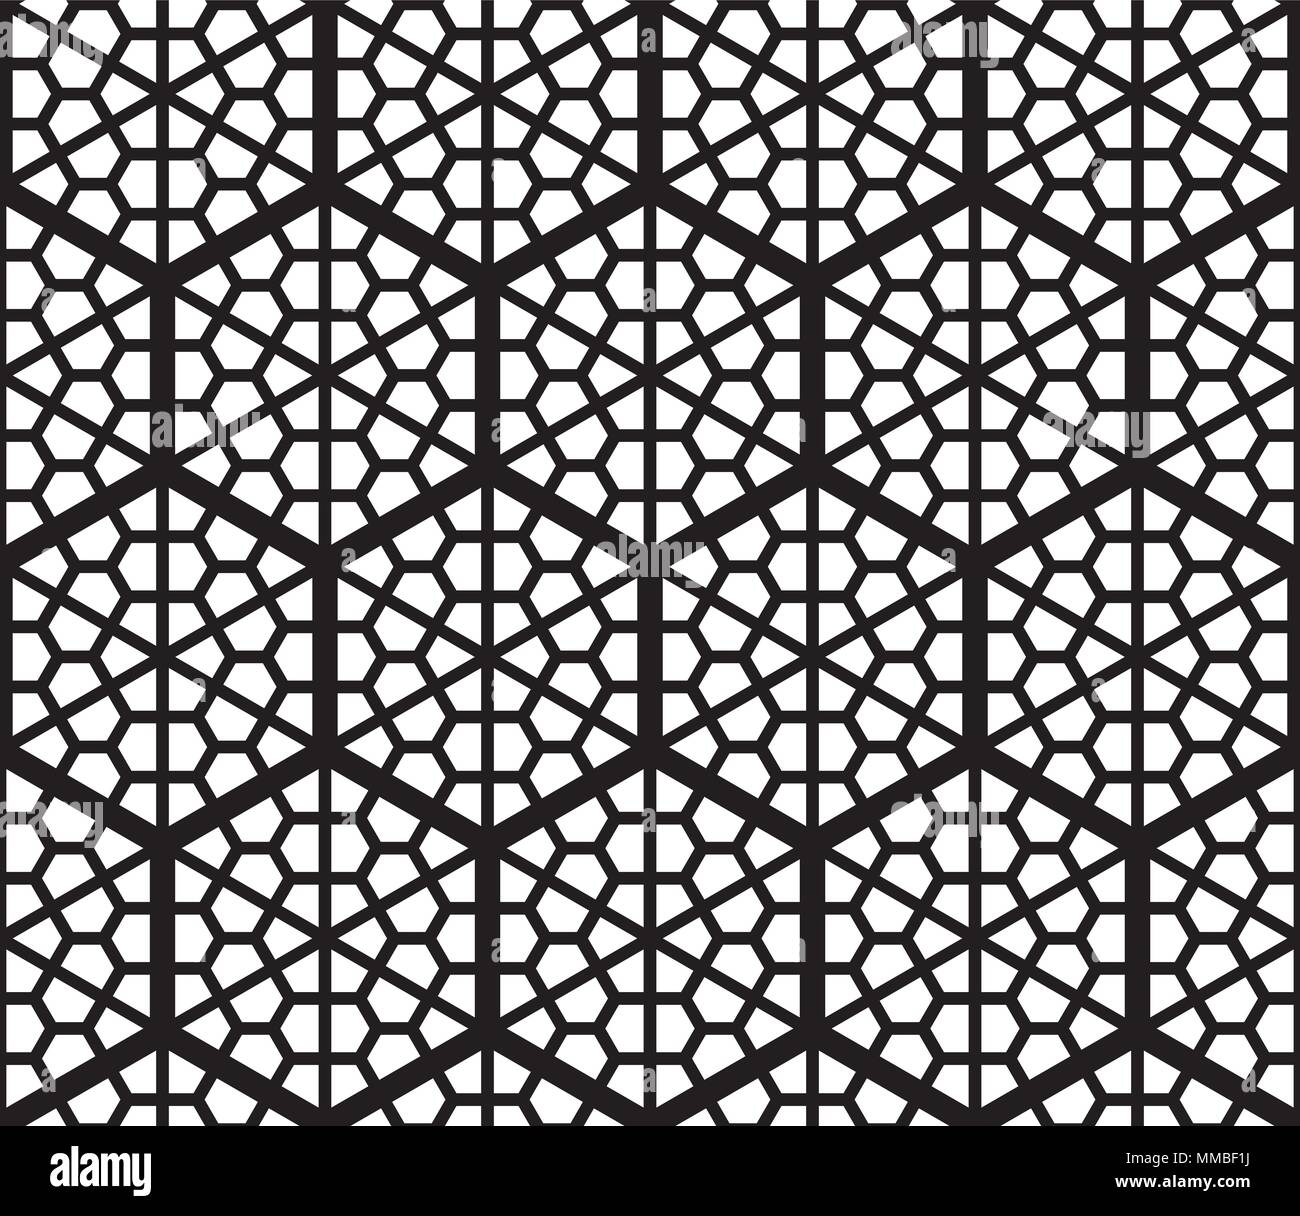 Seamless Geometric Pattern Based On Traditional Japanese Kumiko Patterns  .Grid Of Hexagons Of Large Thickness.